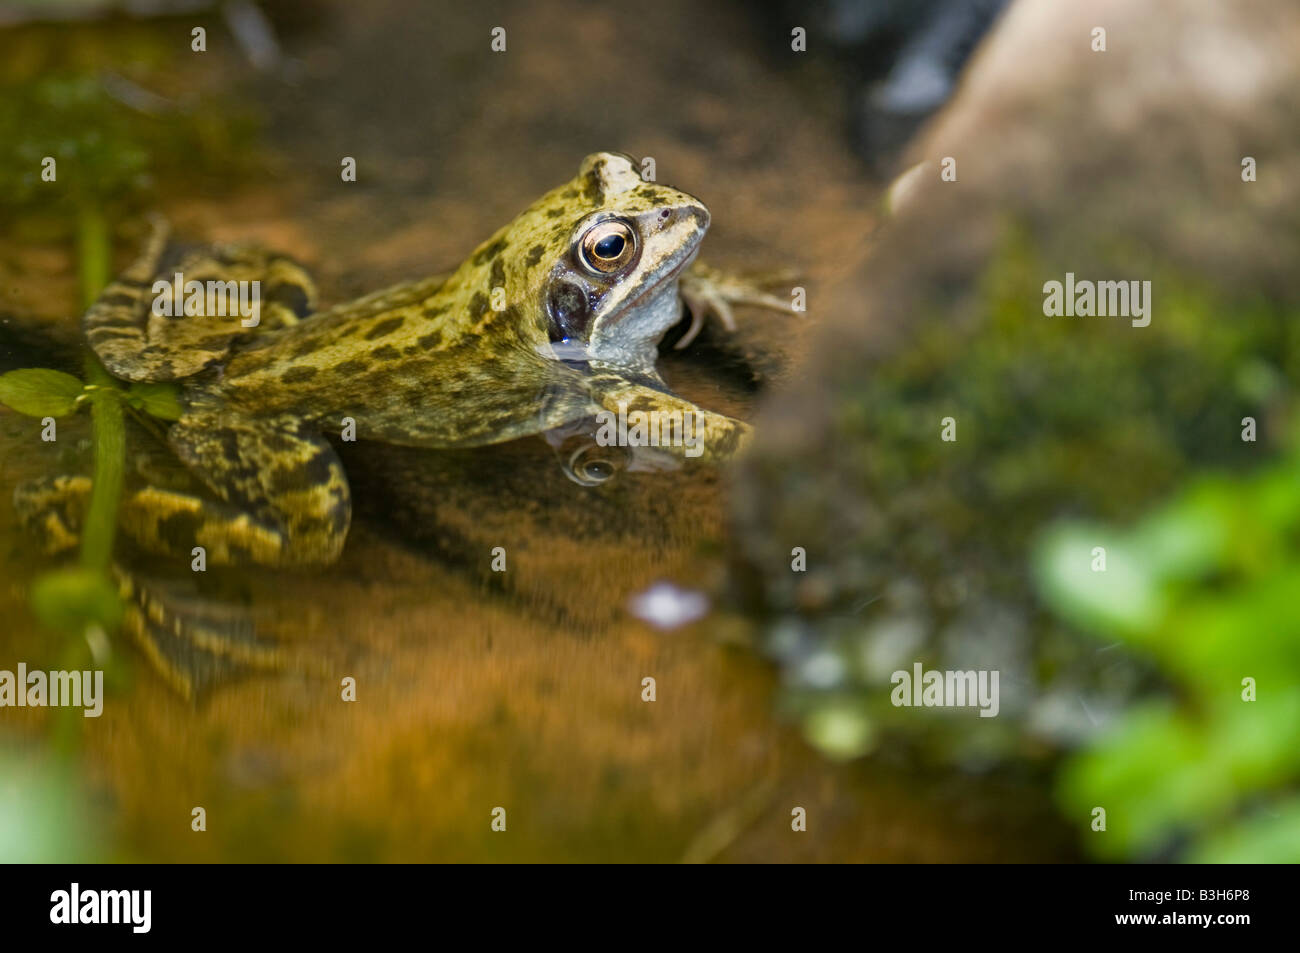 A male Common Frog Rana temporaria in a fresh water wildlife pond. - Stock Image